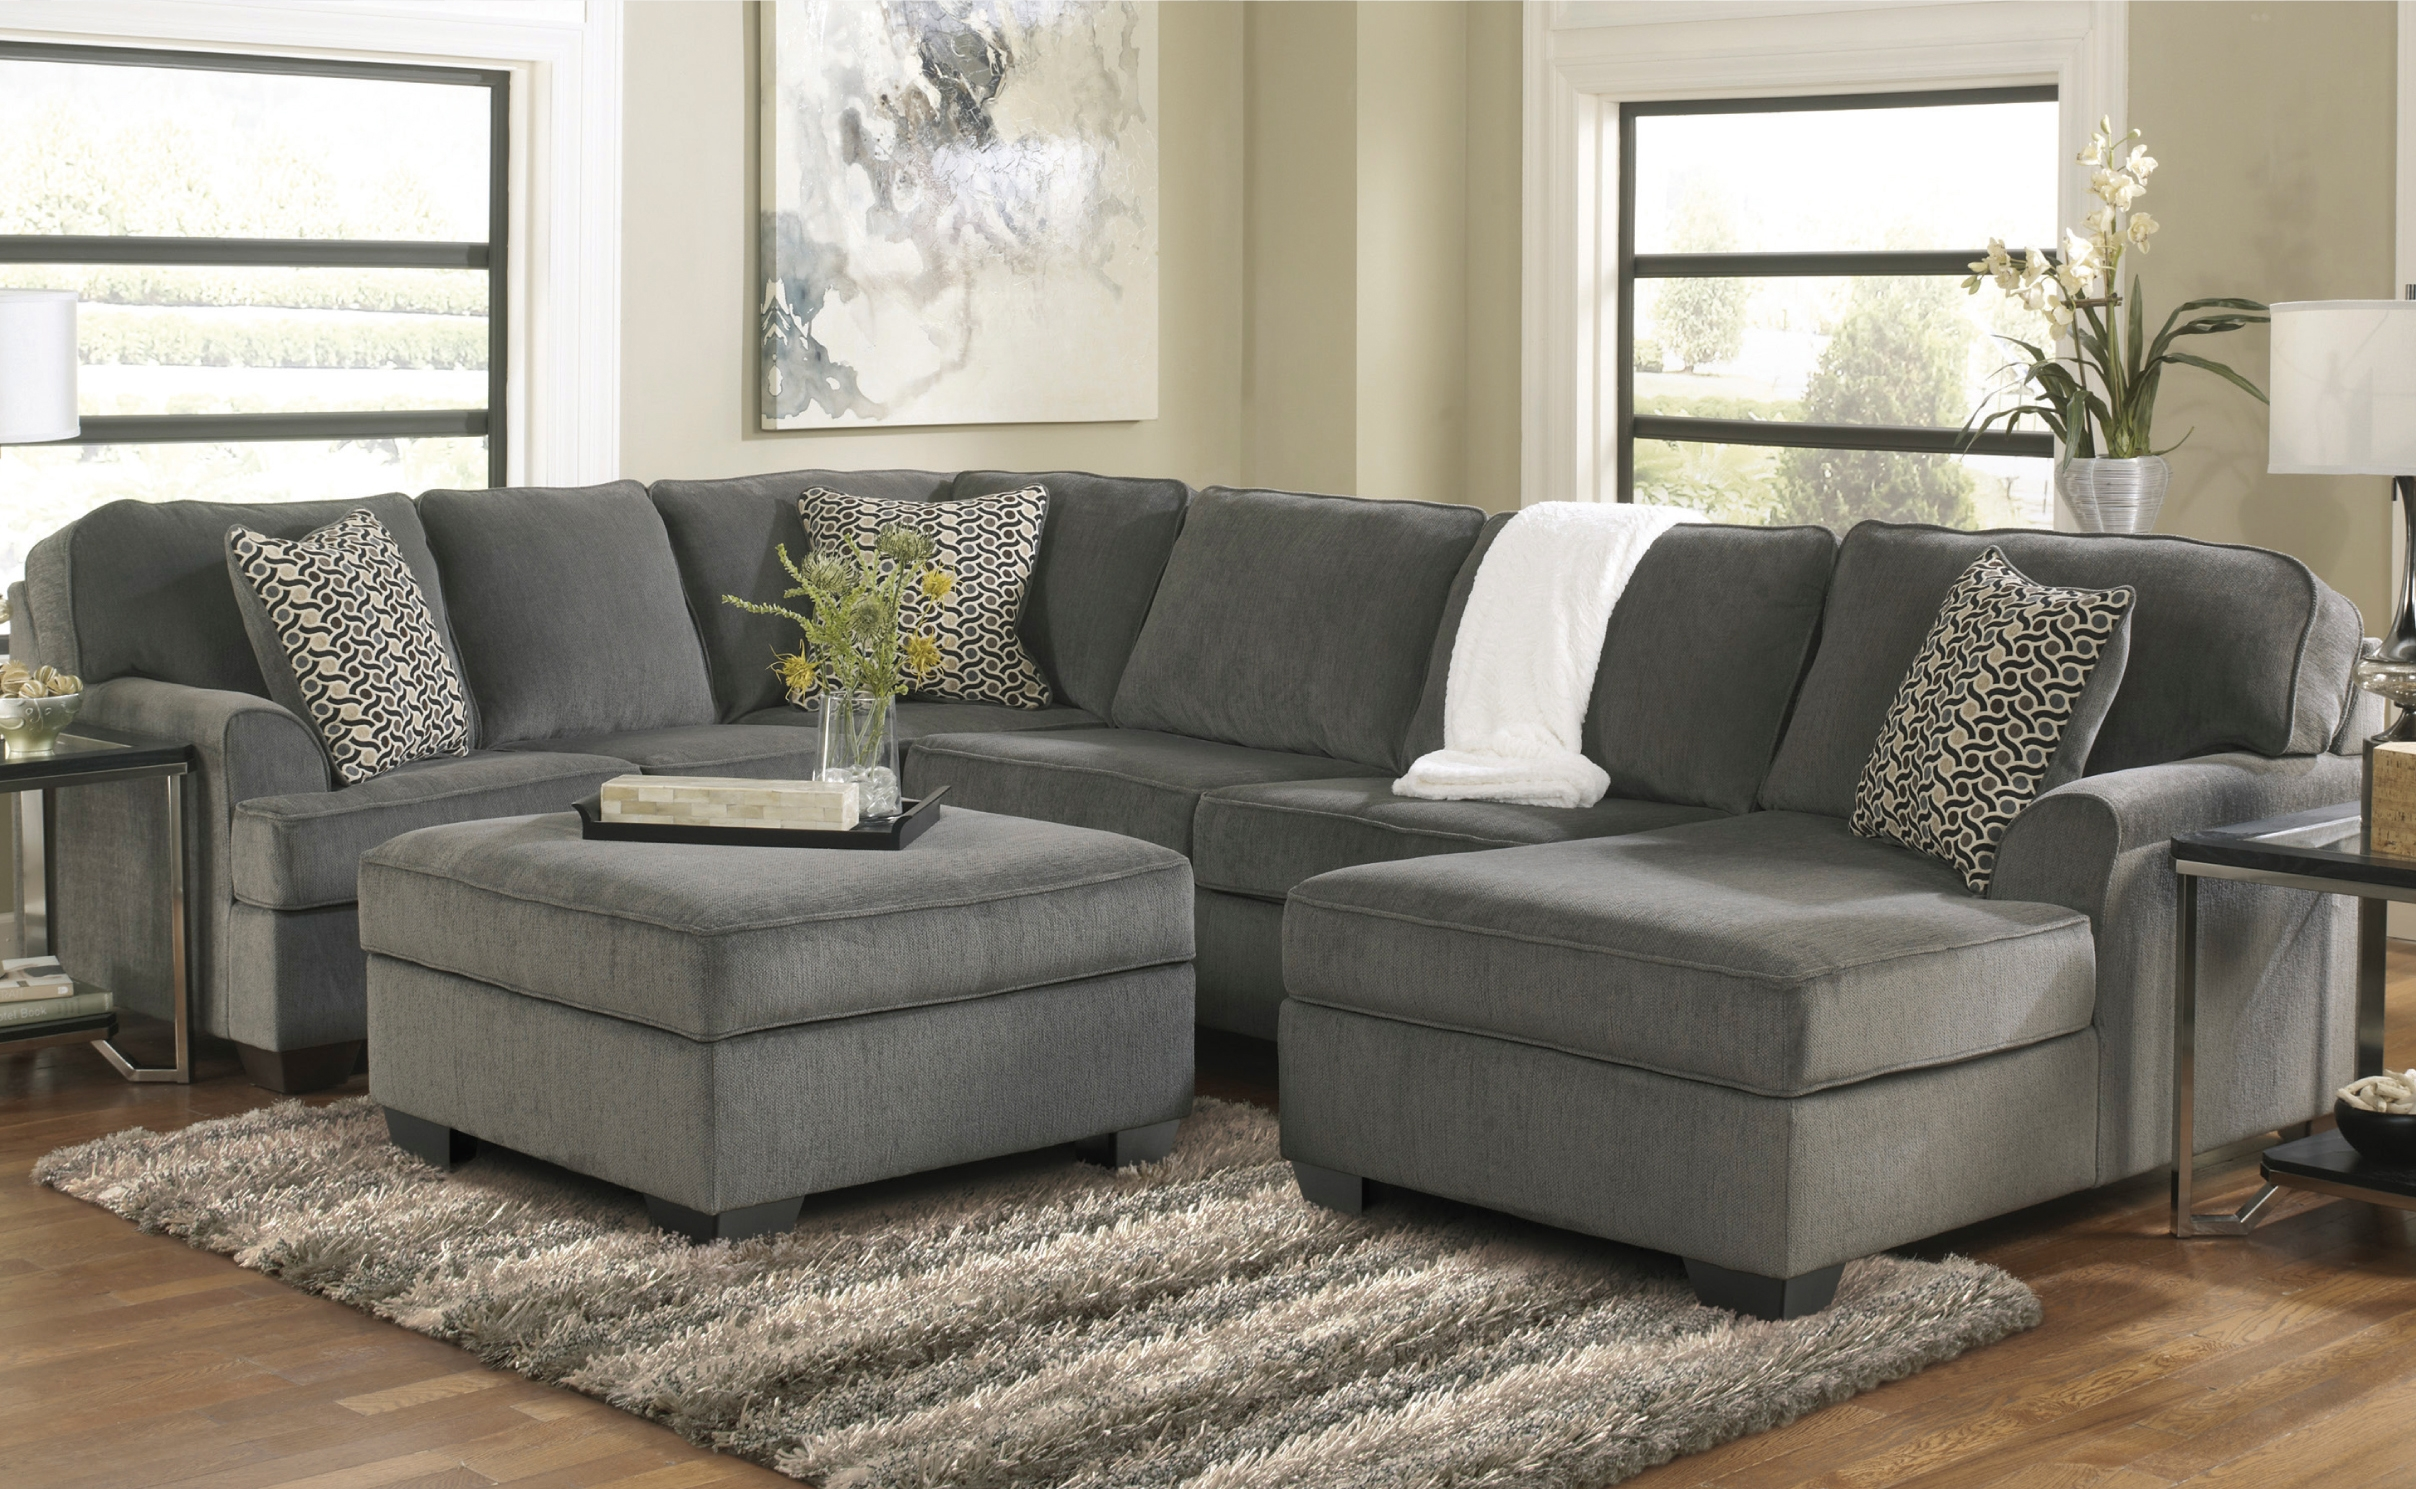 12 best ideas of closeout sectional sofas for Sectional couch clearance sale